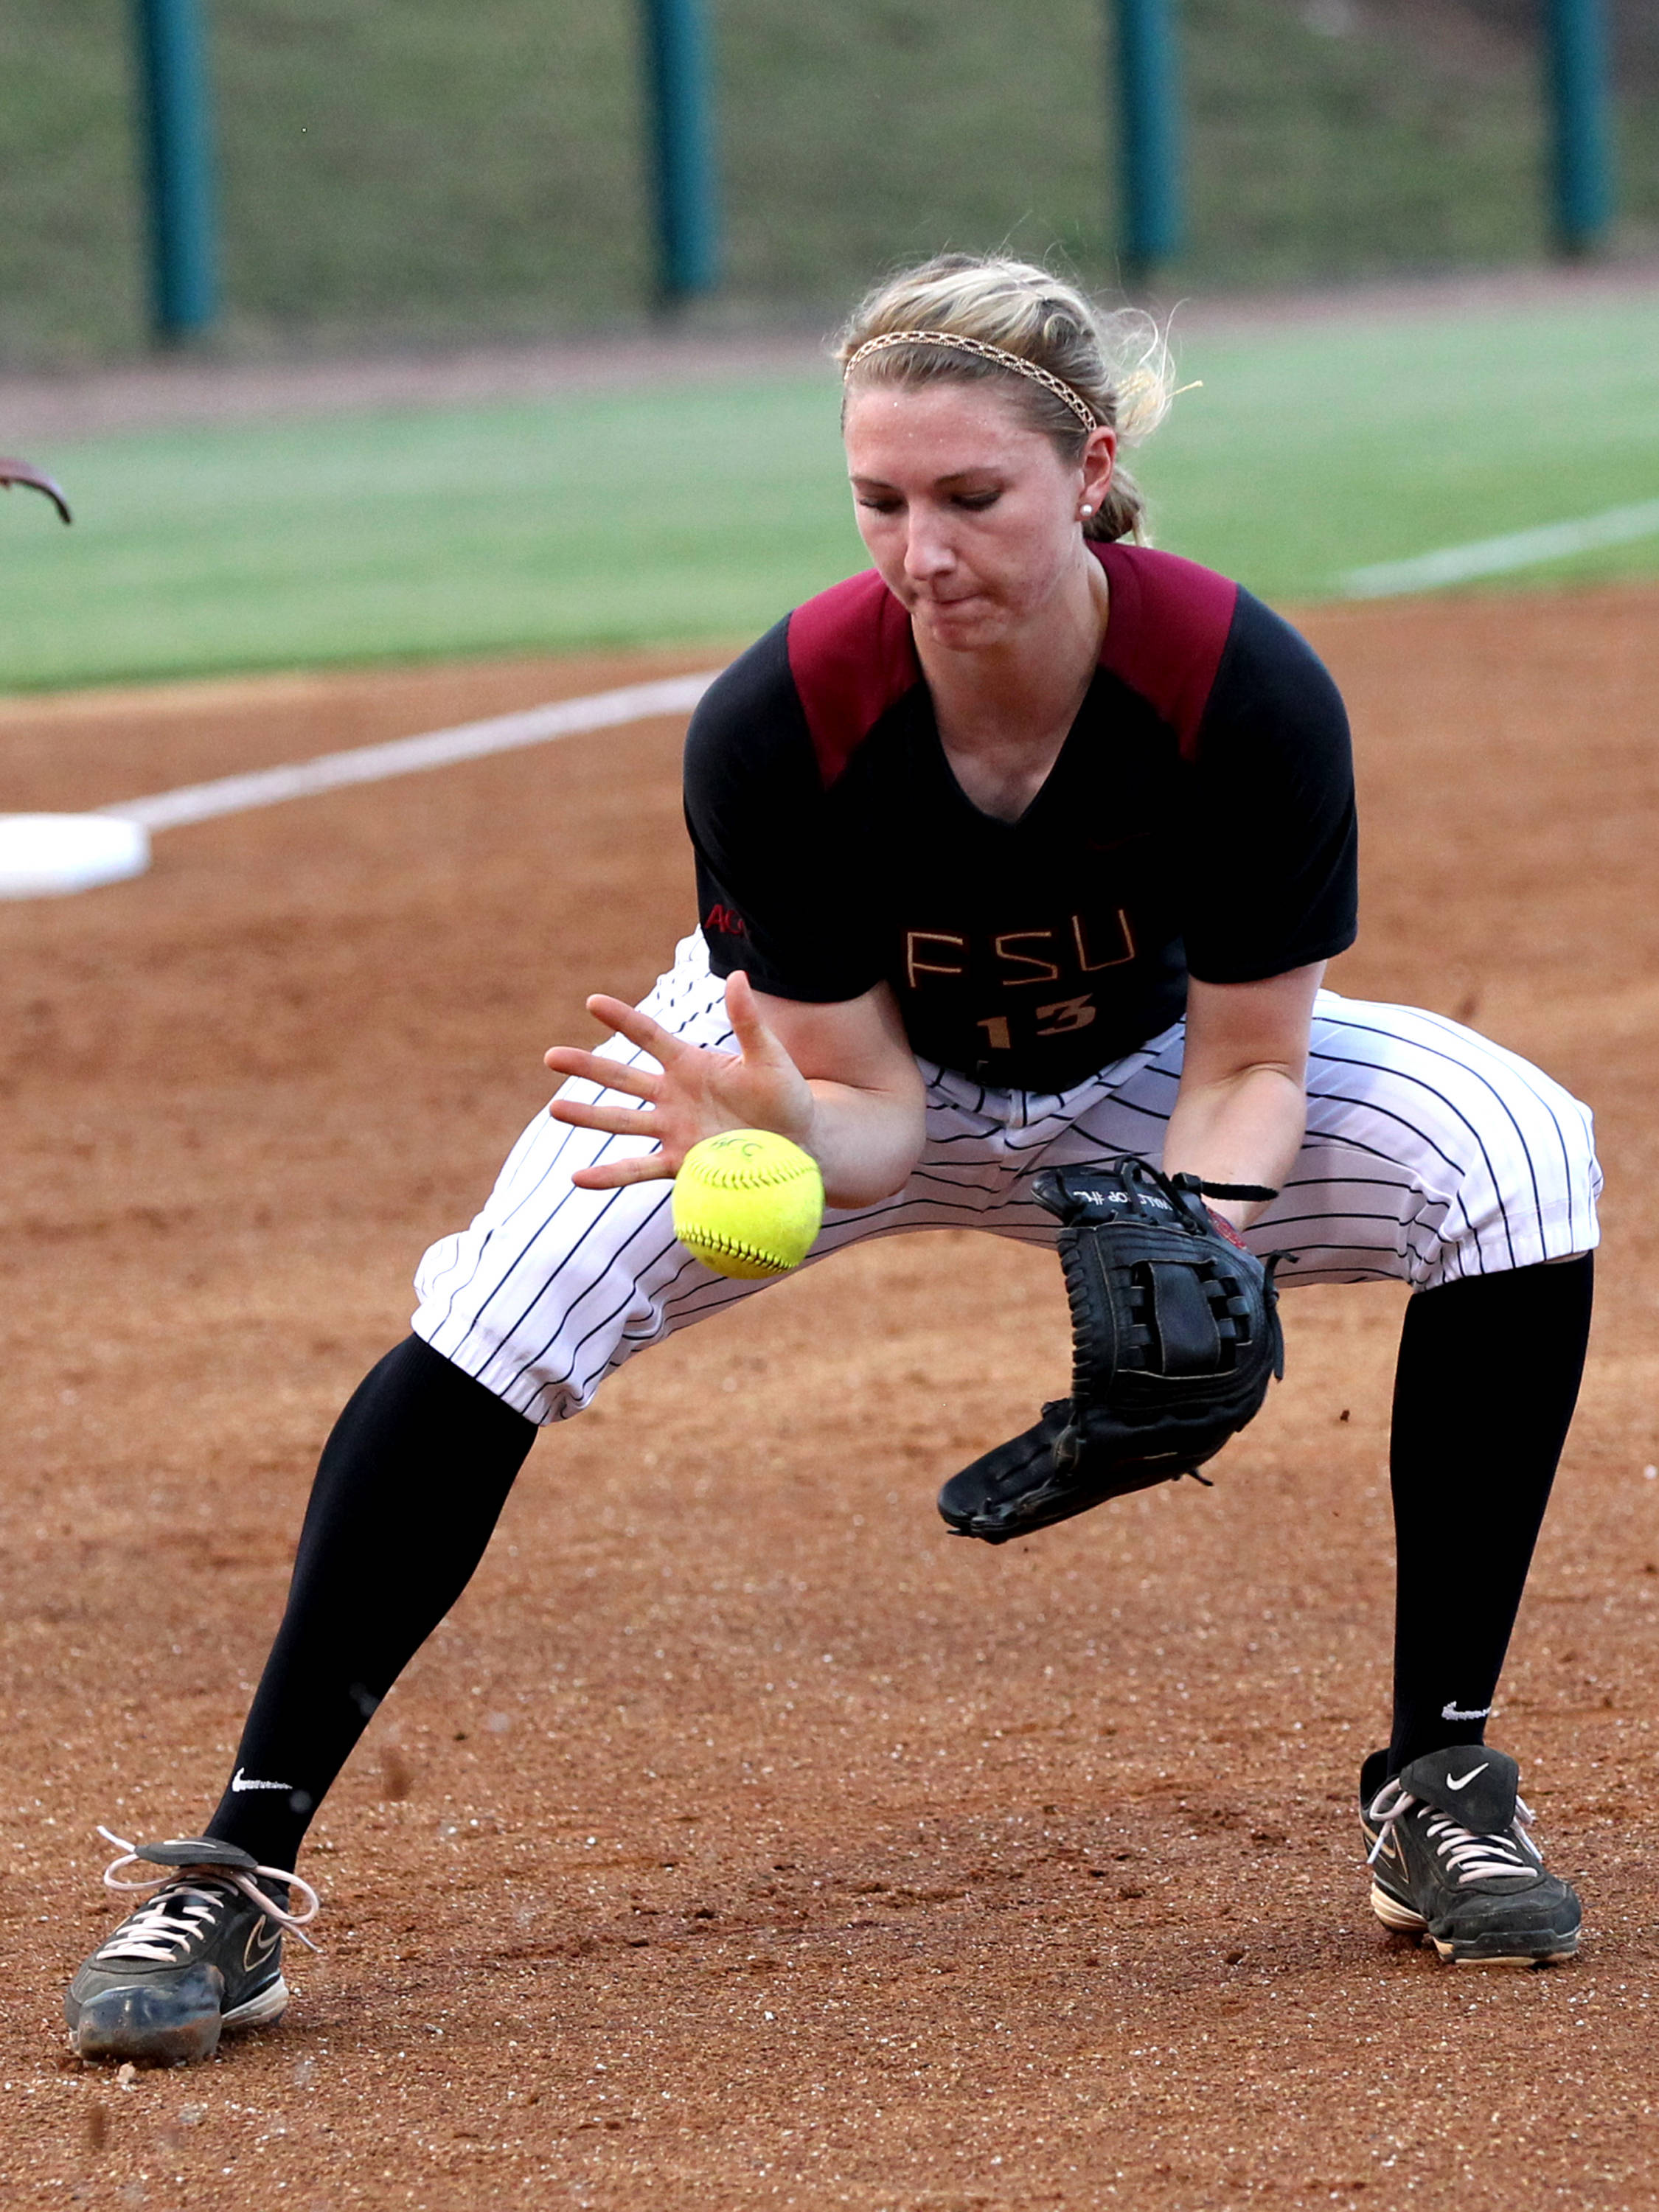 Pitcher Lacey Waldrop fielding her position, FSU vs Virginia, 04/13/13 . (Photo by Steve Musco)